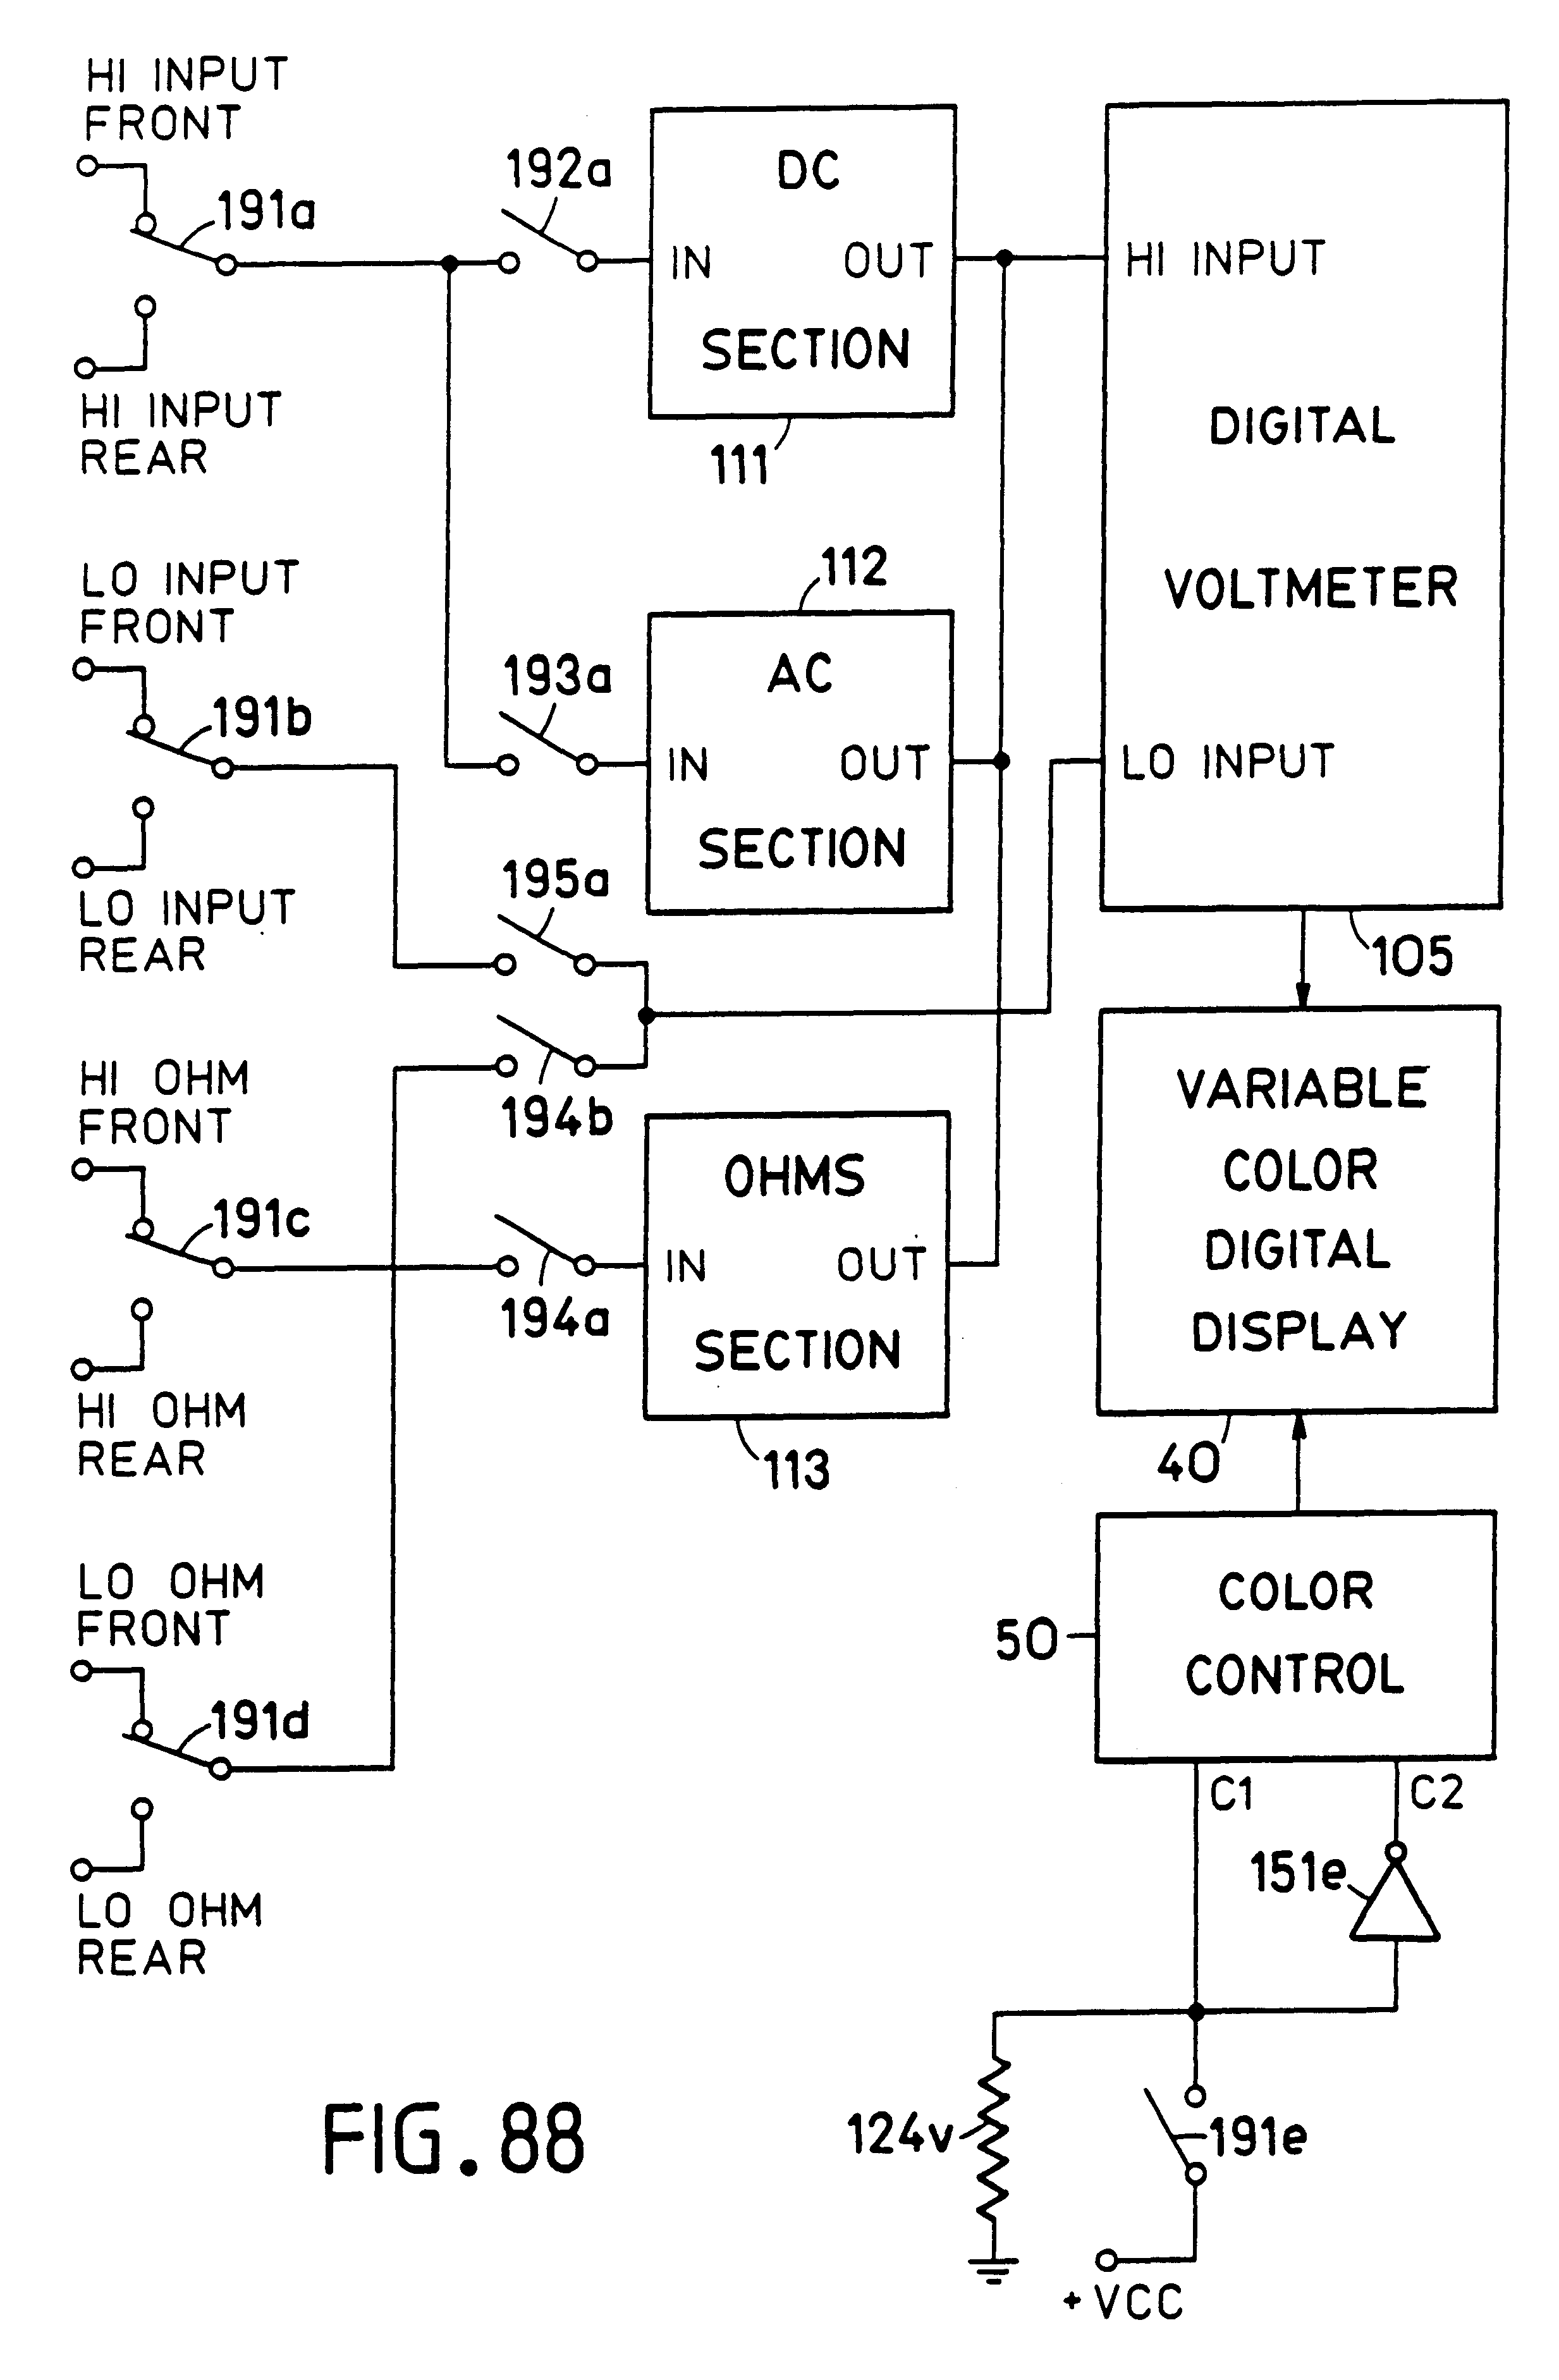 Patent US6577287 - Dual Variable Color Display Device - Google Patents